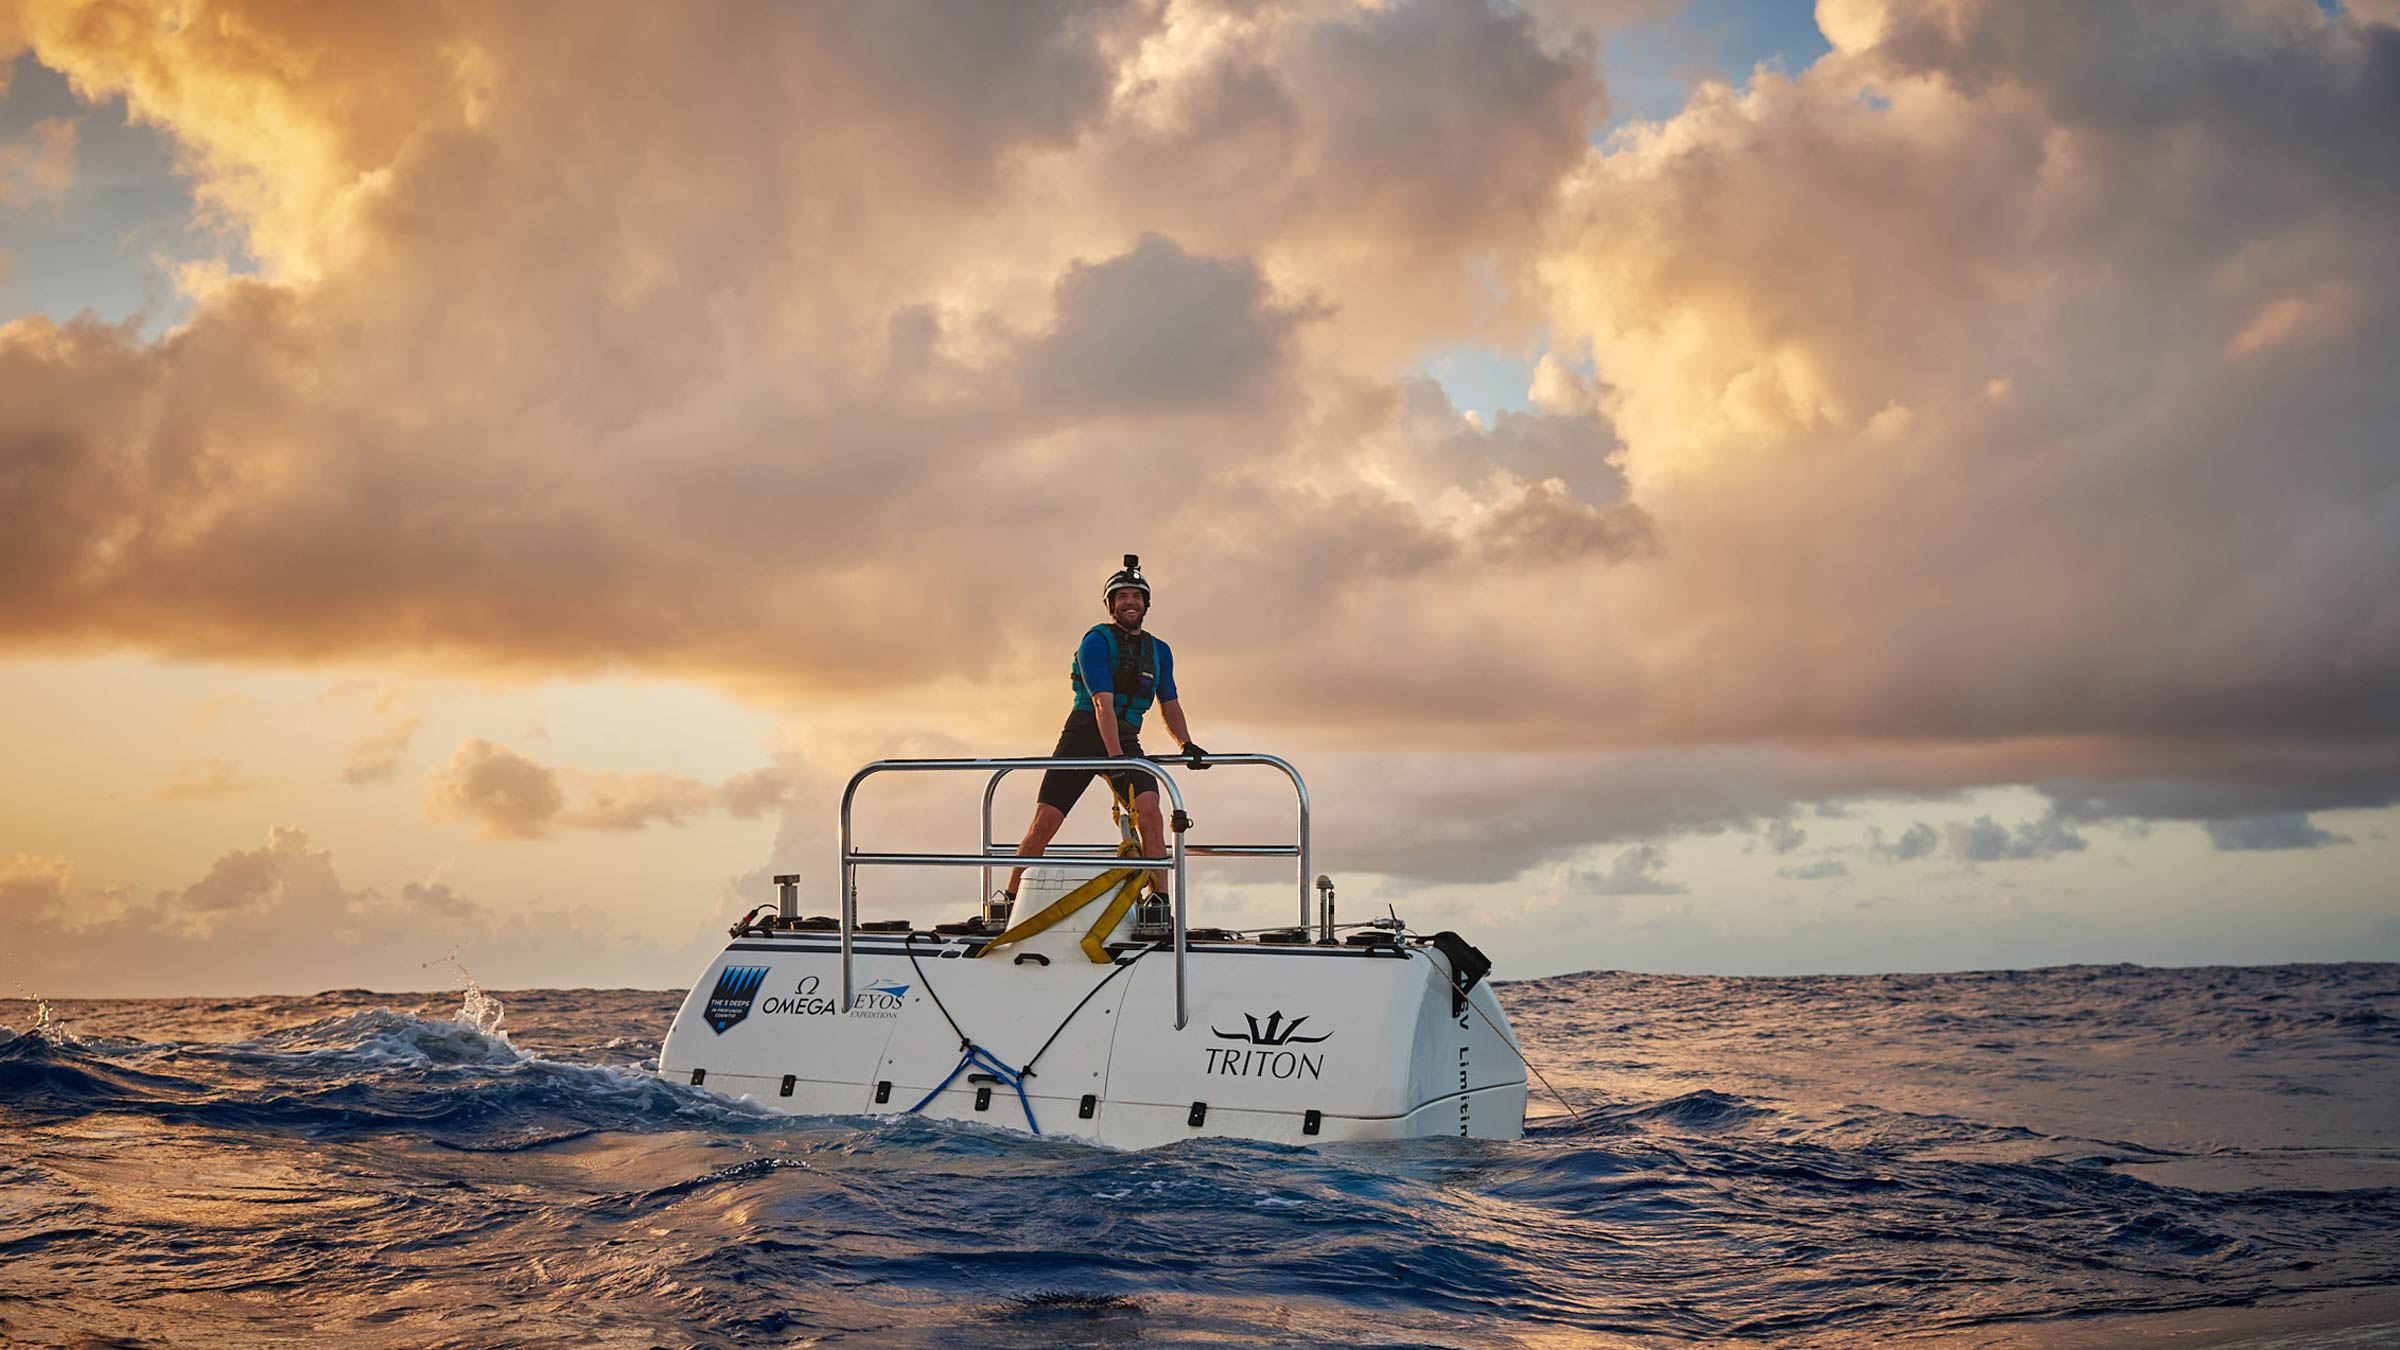 Triton employee Tim on top of the Triton 33000/2 as she dives in the sunset. Reeve Jolliffe.